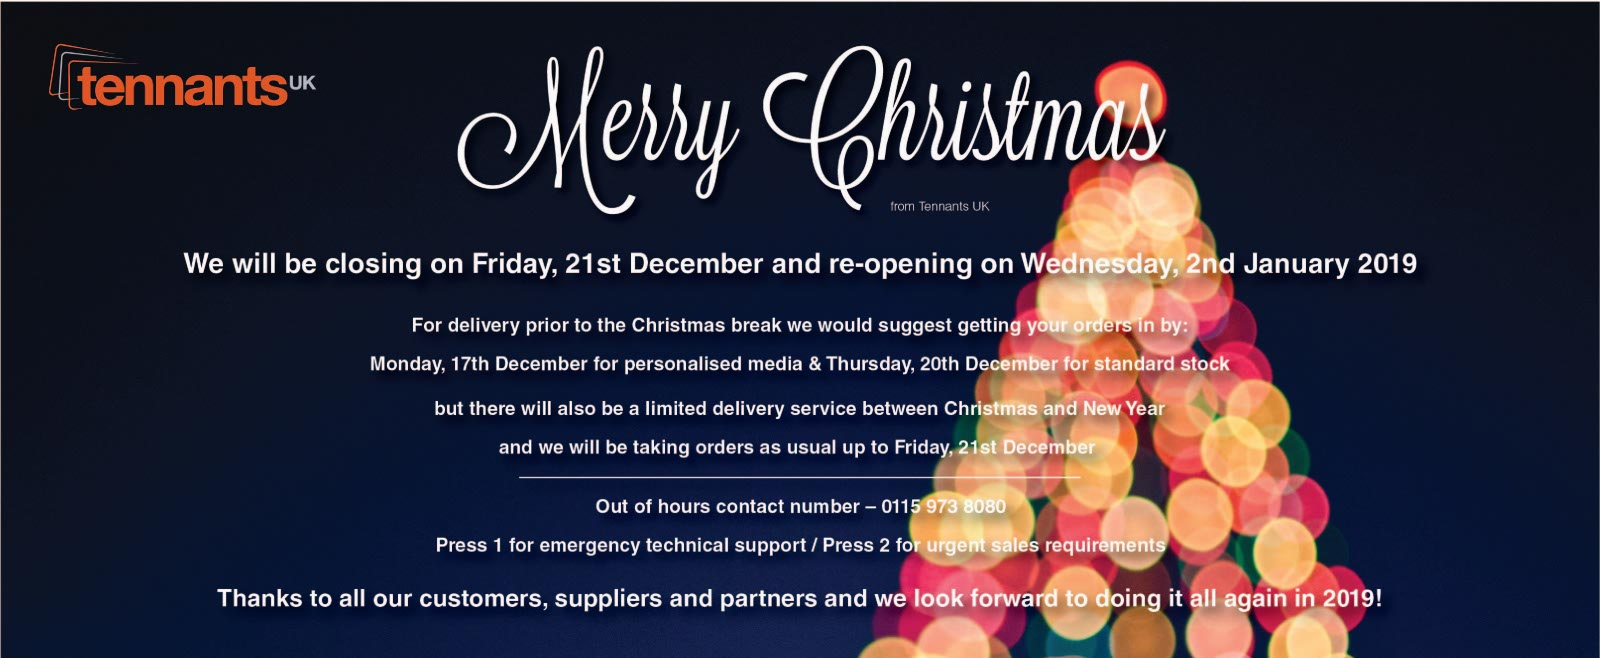 Tennants UK Christmas 2018 opening hours